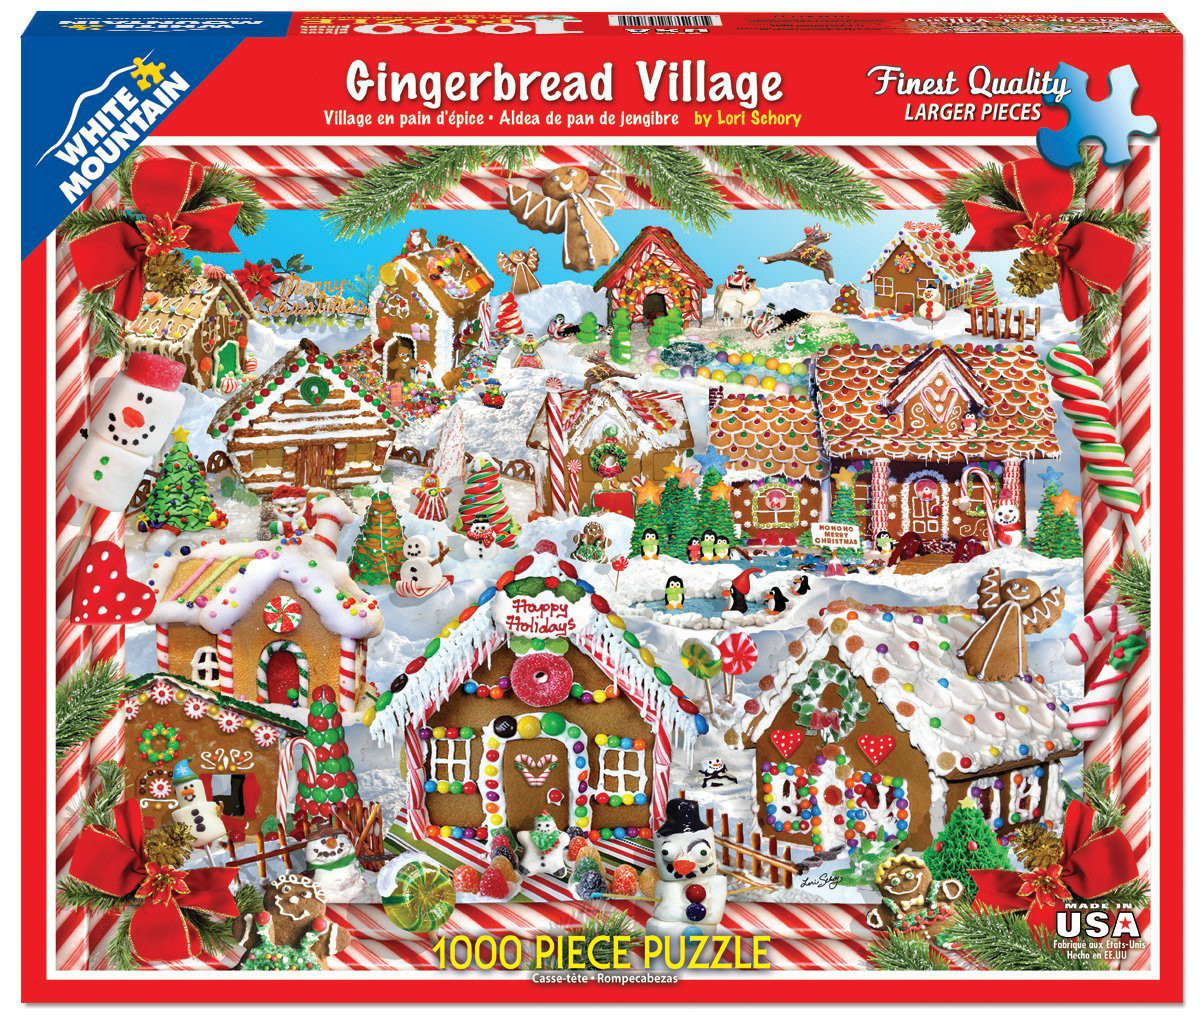 Gingerbread Village - Scratch and Dent Christmas Jigsaw Puzzle